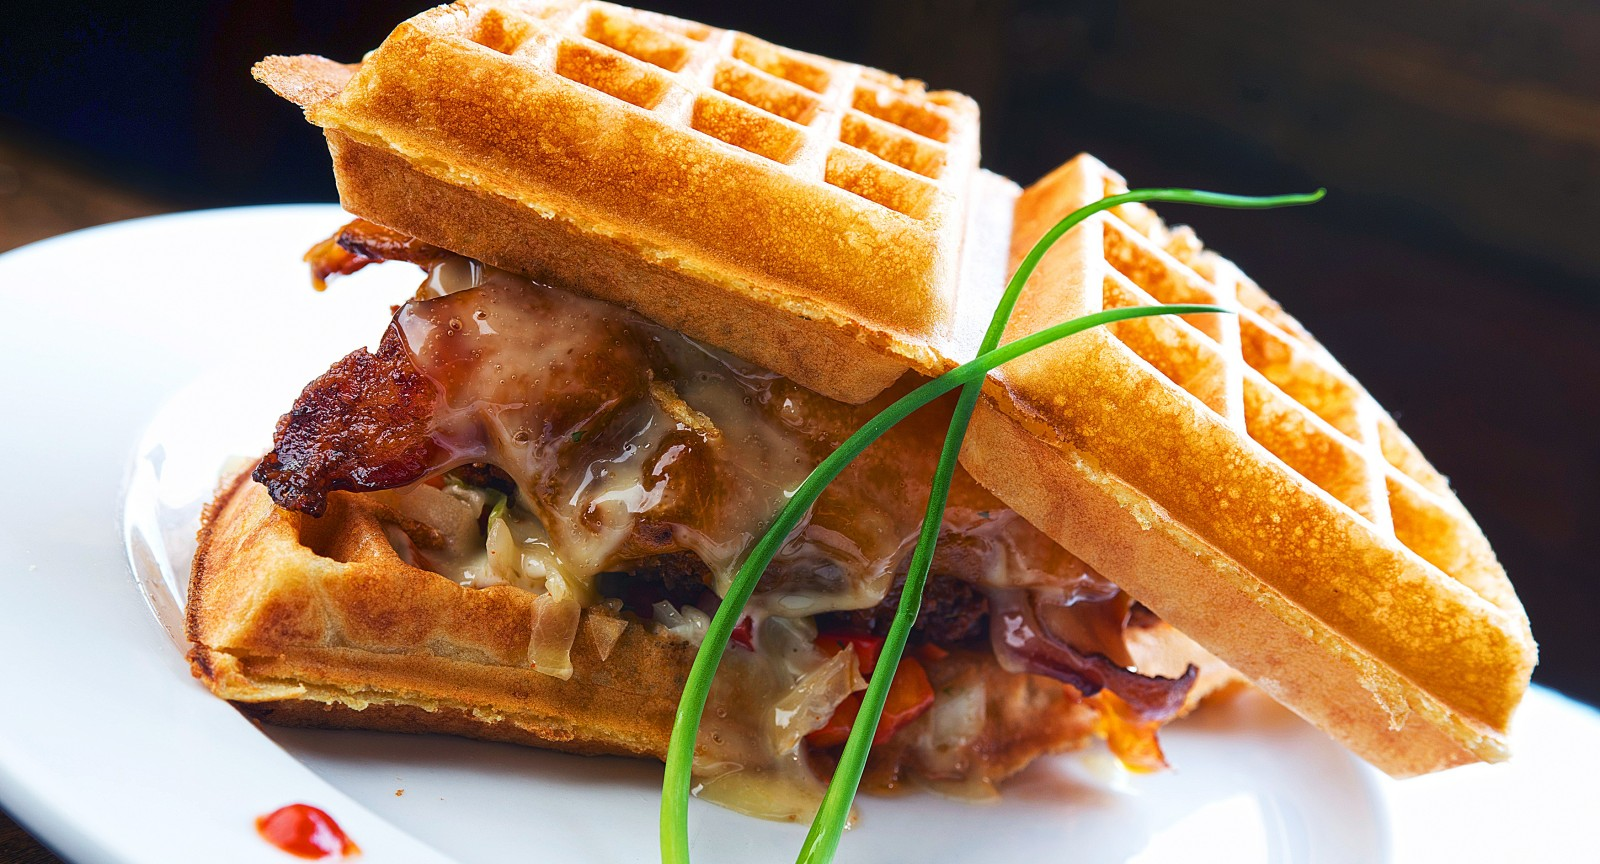 The Griffon Gastropub's chicken and waffle sandwich will be making its East Aurora debut in July, if all goes as planned.